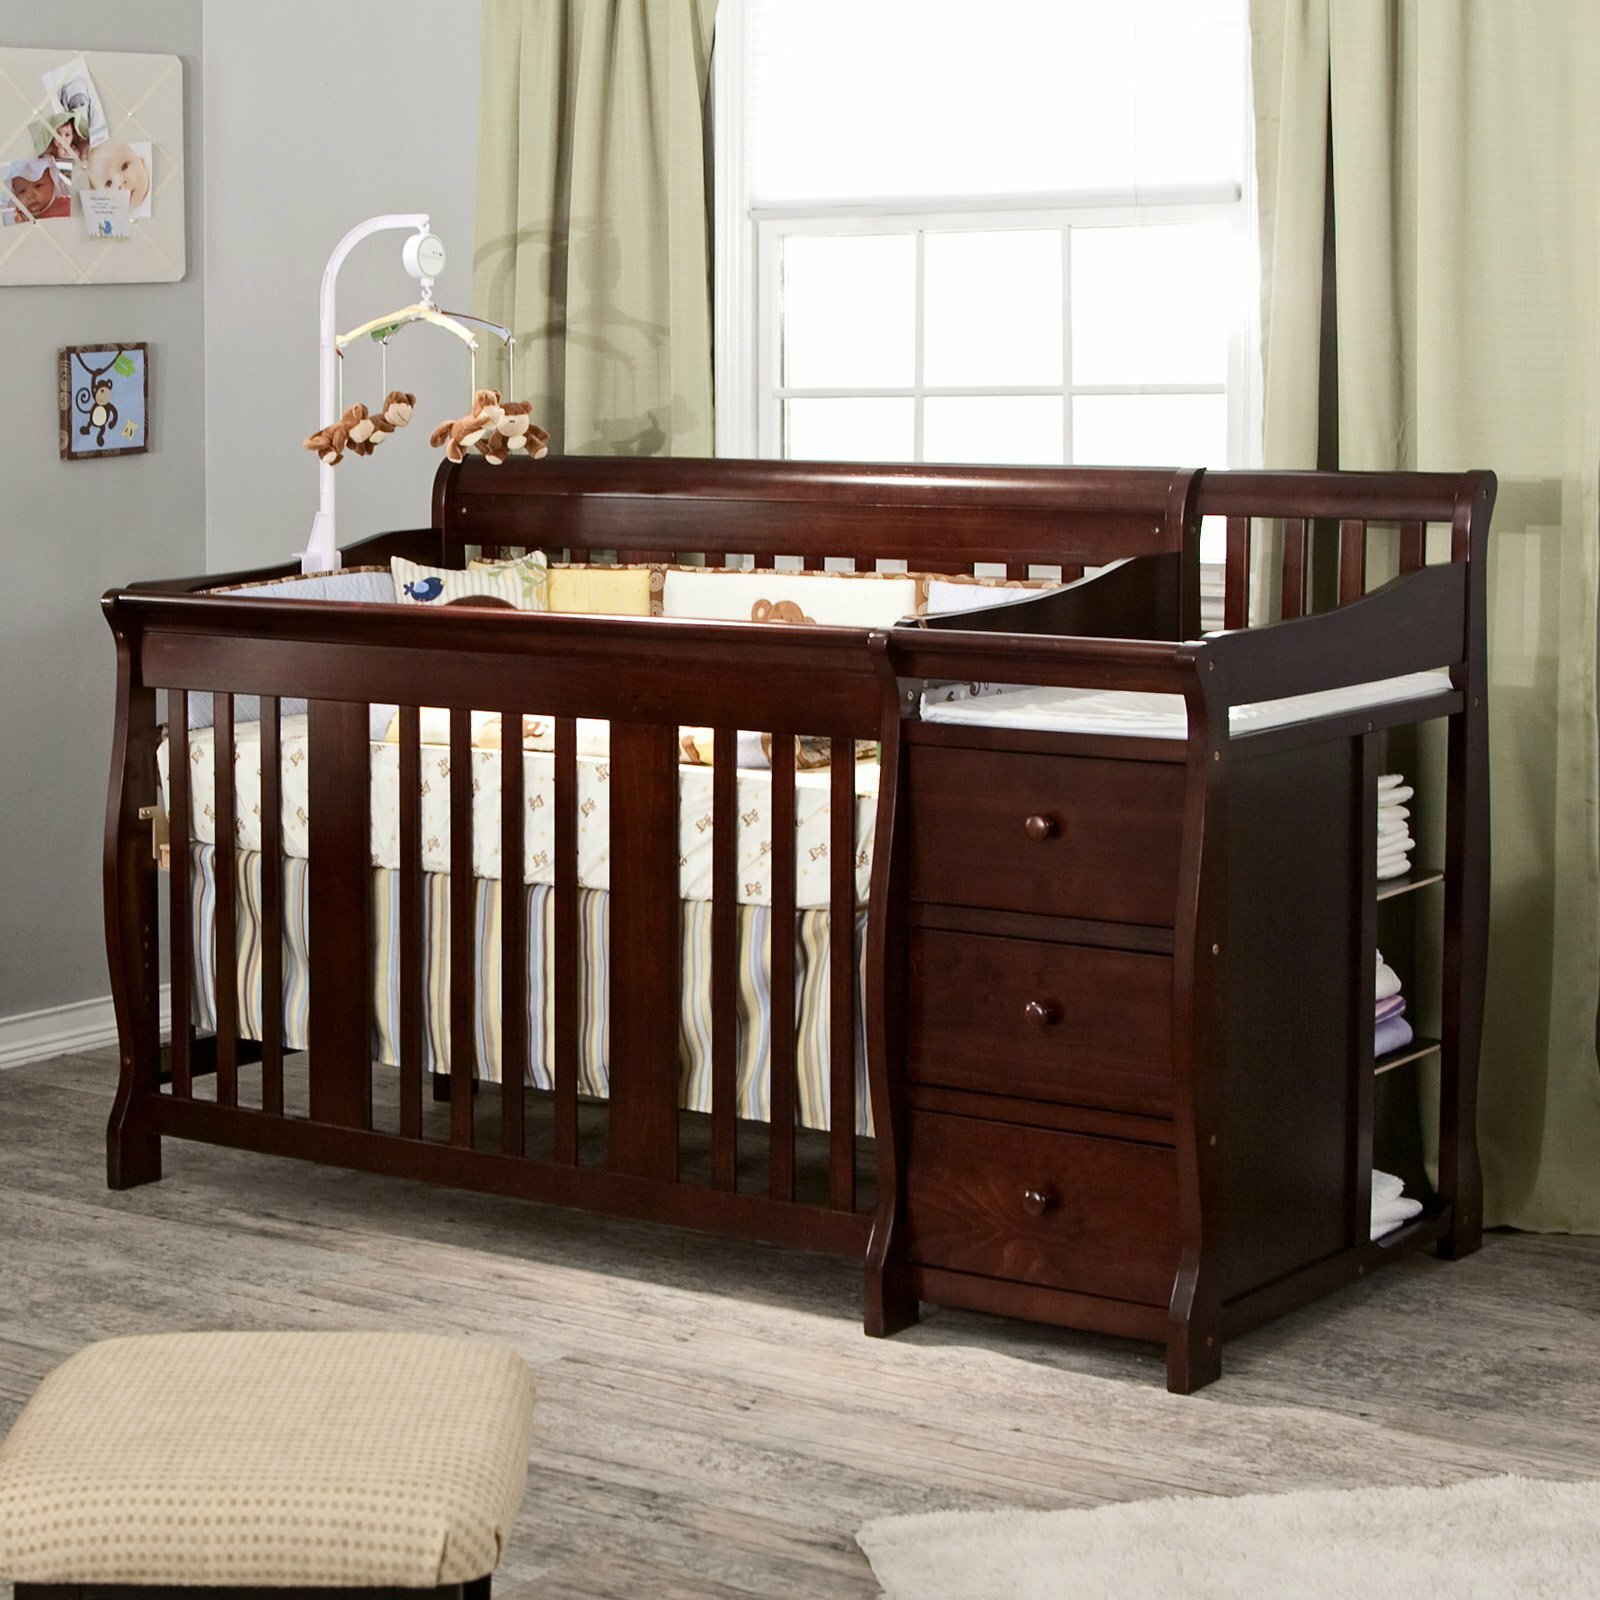 4 in 1 side convertible crib changer nursery furniture for Baby furniture